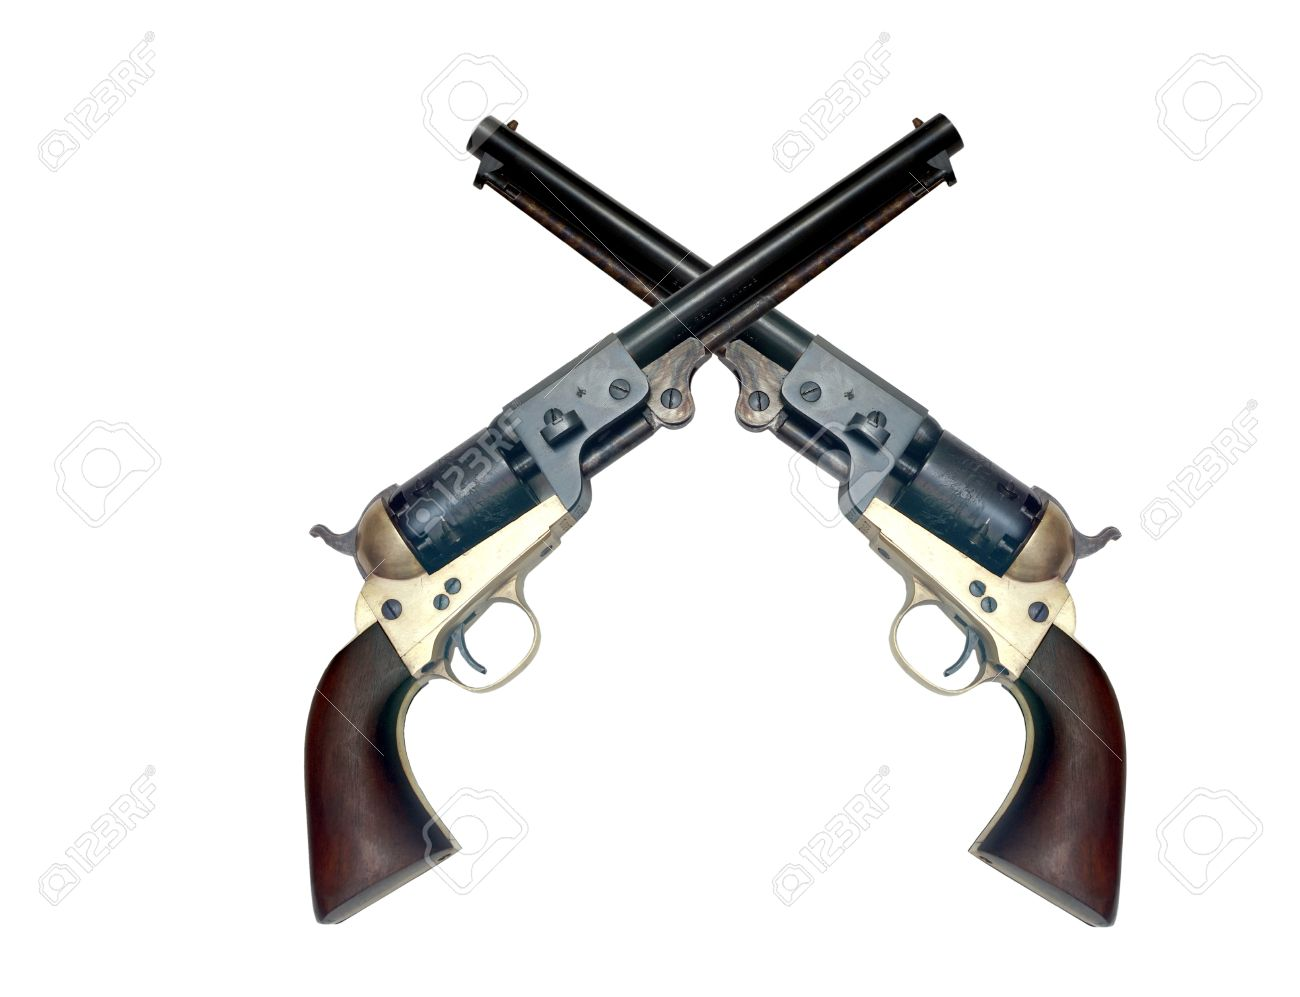 two old metal colt revolver on white background - 11052912